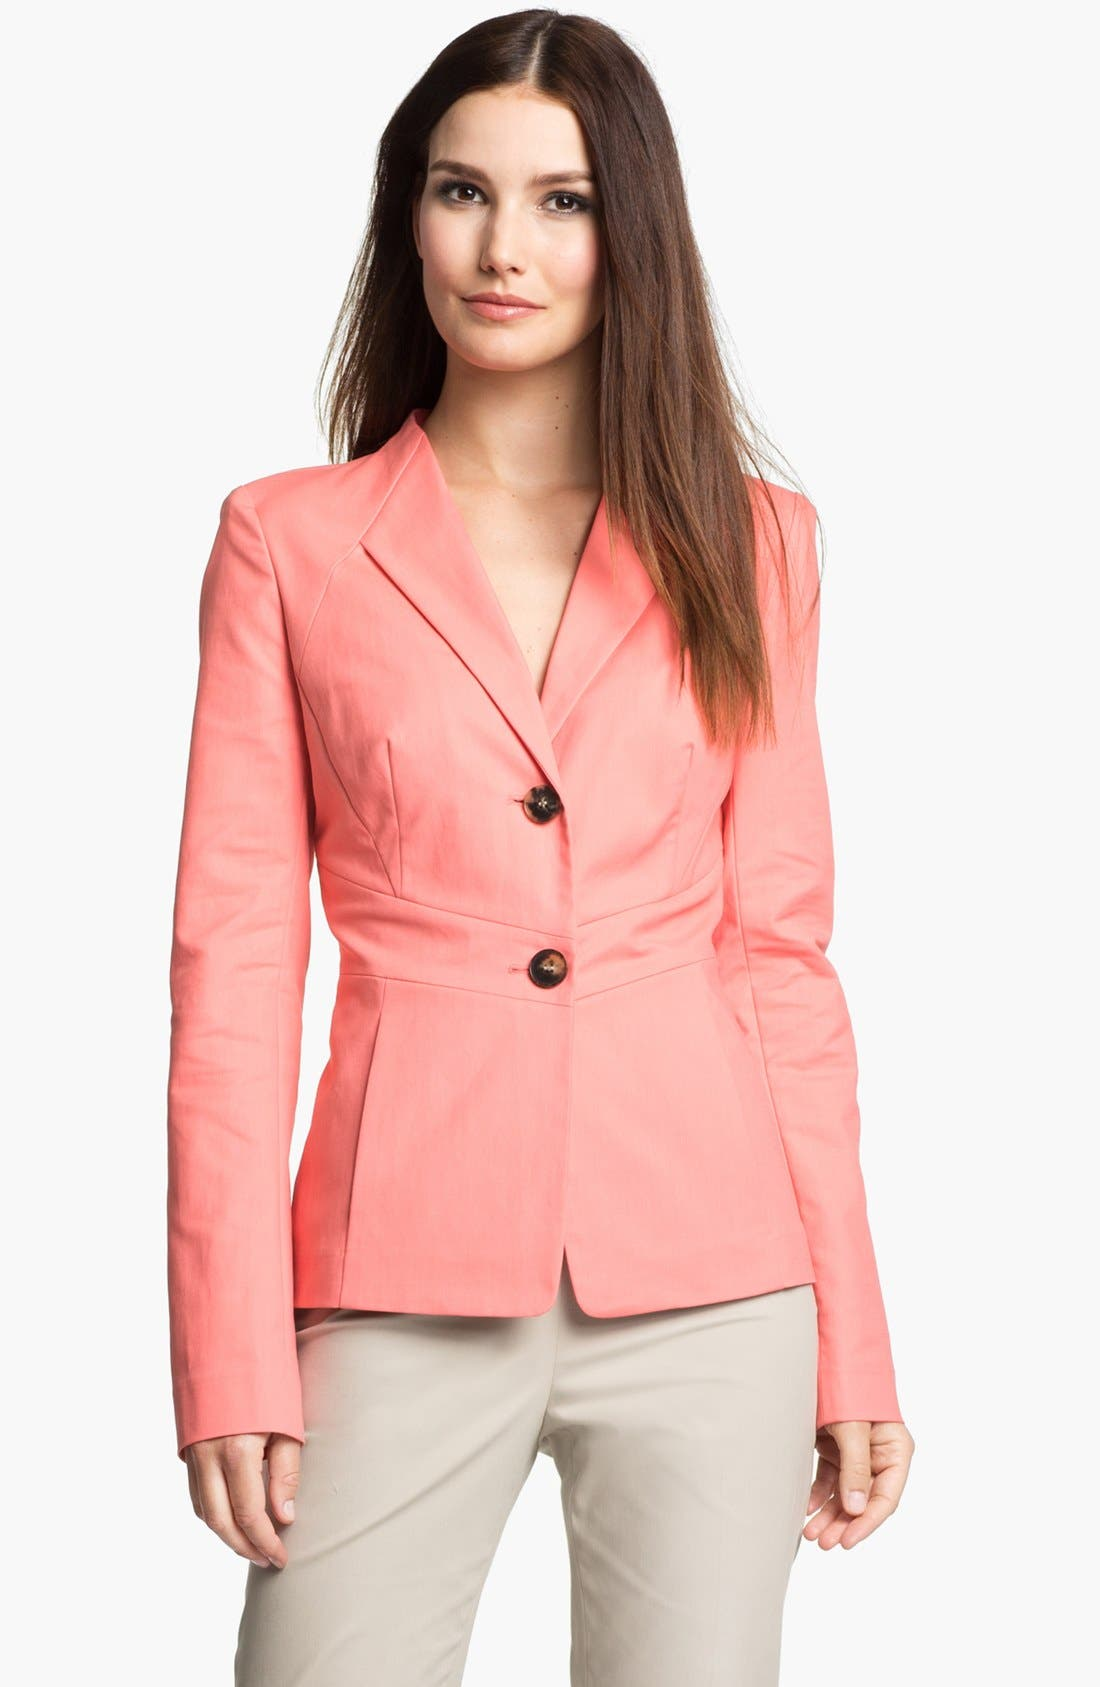 Alternate Image 1 Selected - Lafayette 148 New York 'Bailey - Metropolitan Stretch' Jacket